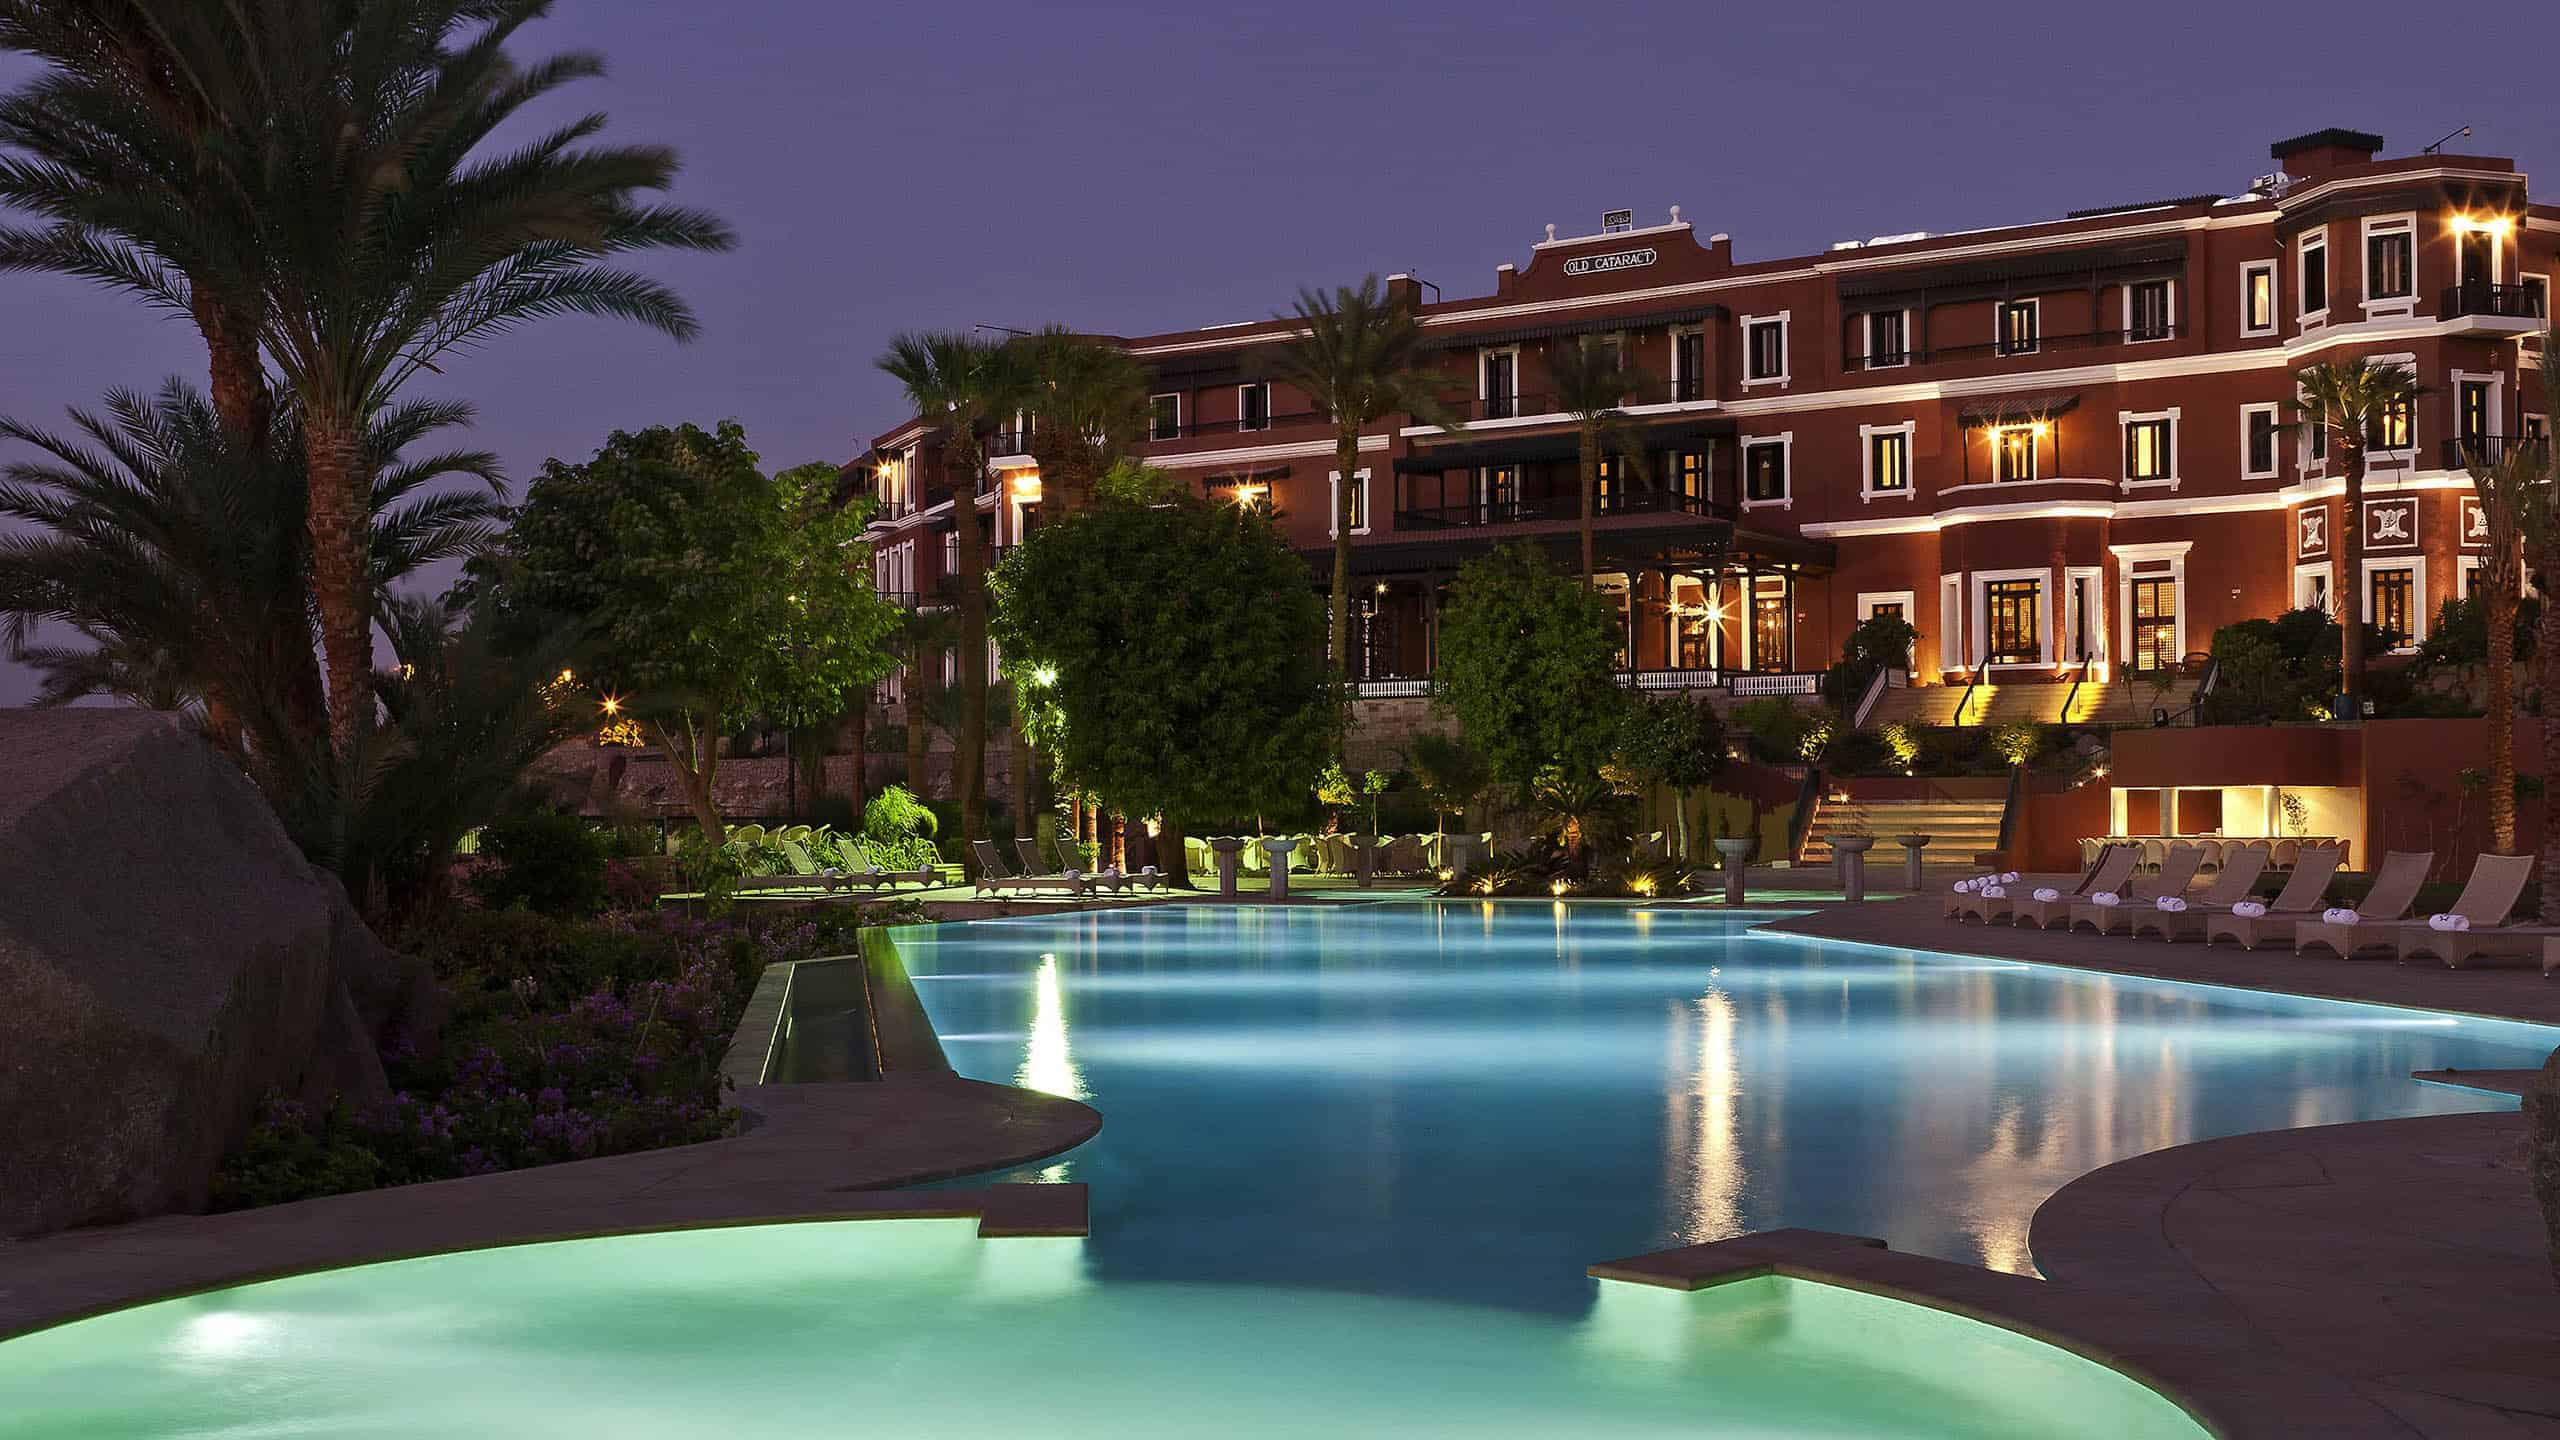 One of the best hotels in Aswan, Old cataract